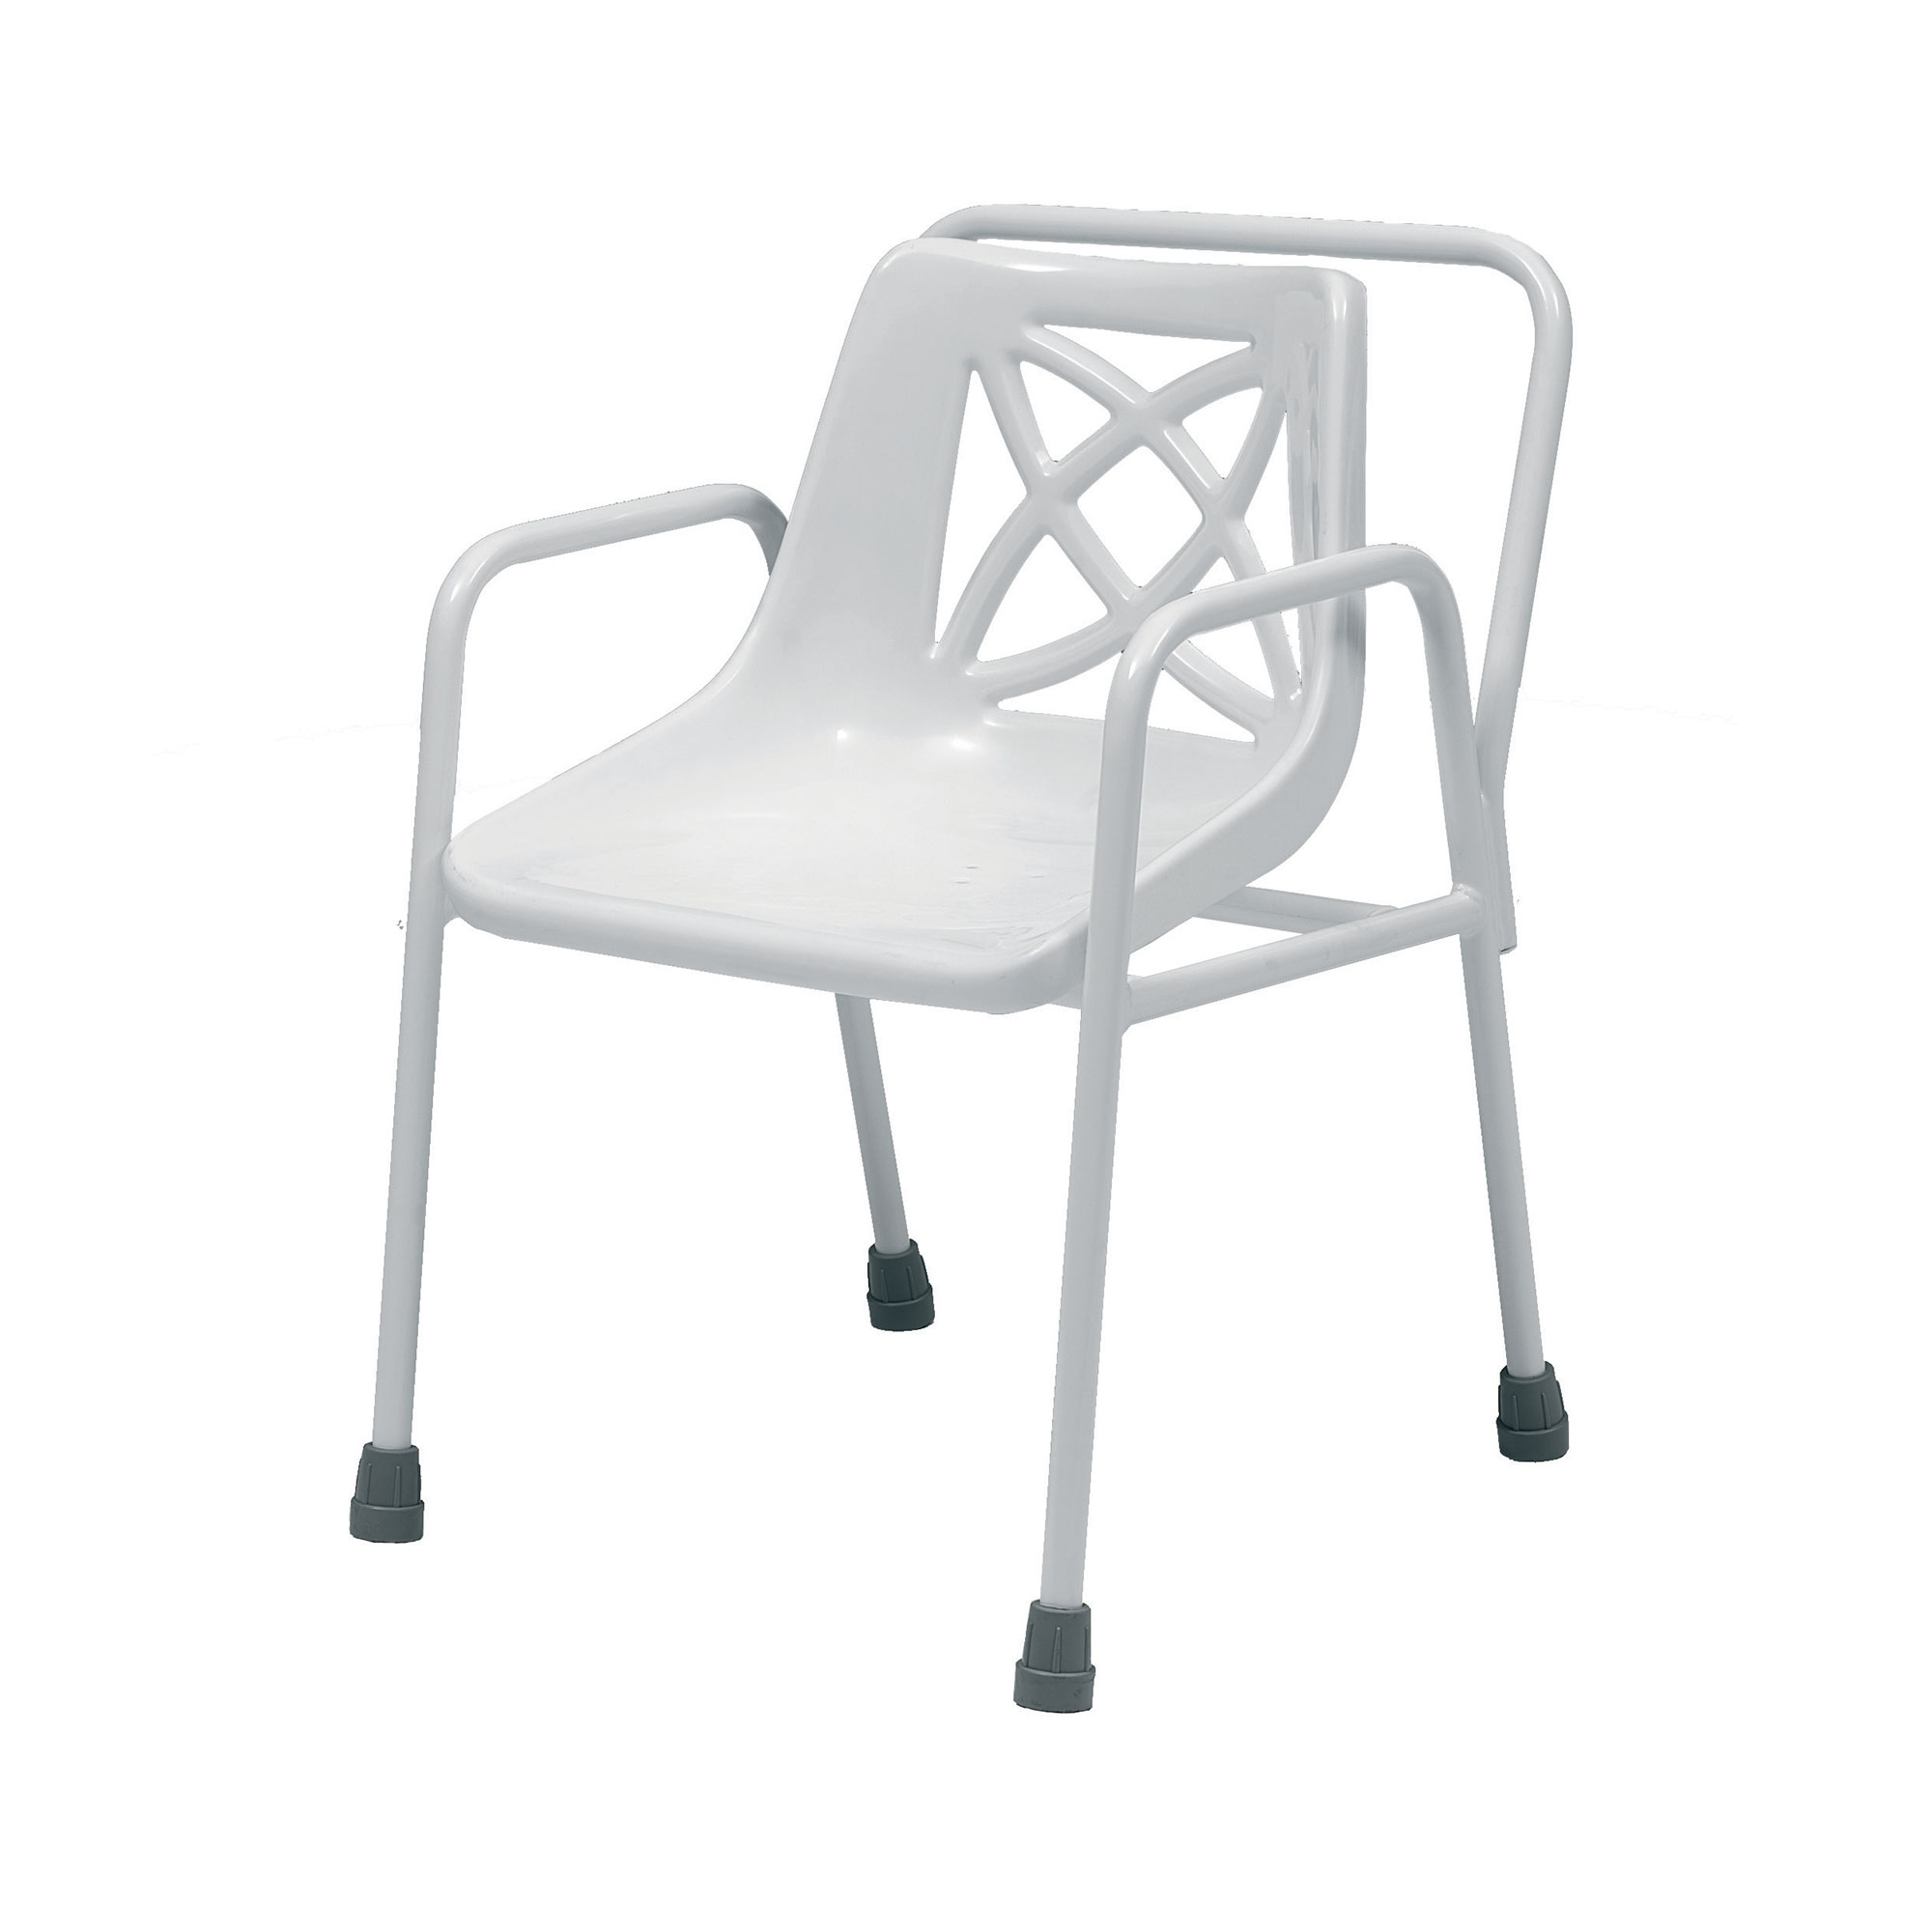 chair photo frame hd salon styling chairs wholesale 4553 heavy duty shower roma medical 4553hd